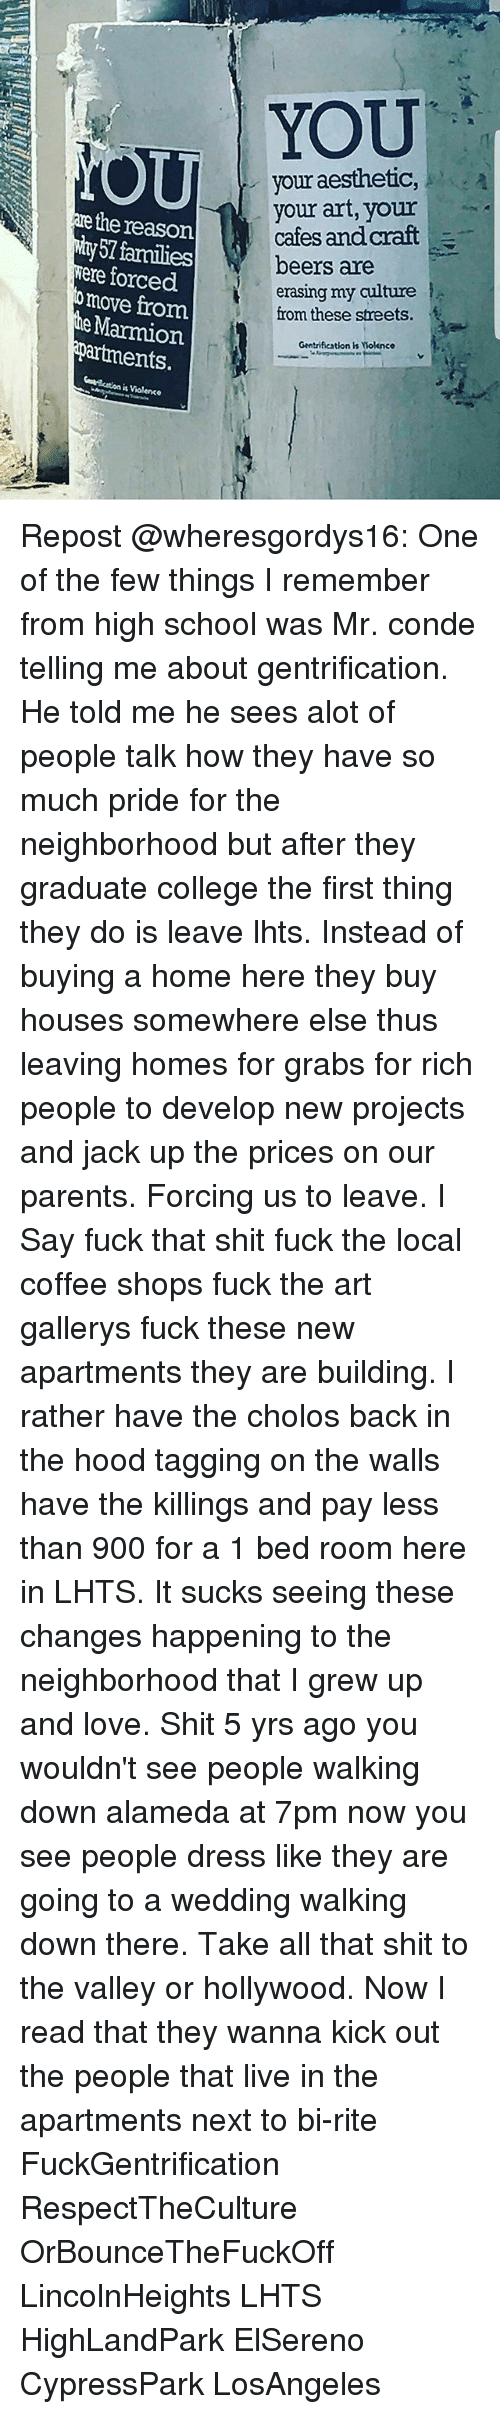 develope: YOU  your aesthetic,  your art, your  cafes and craft-  beers are  erasing my culture  from these streets. f  the reason  57 families  ere forced  torced  omove from  Marmion  artments,.  Gentrification is Molknce  t Violenee Repost @wheresgordys16: One of the few things I remember from high school was Mr. conde telling me about gentrification. He told me he sees alot of people talk how they have so much pride for the neighborhood but after they graduate college the first thing they do is leave lhts. Instead of buying a home here they buy houses somewhere else thus leaving homes for grabs for rich people to develop new projects and jack up the prices on our parents. Forcing us to leave. I Say fuck that shit fuck the local coffee shops fuck the art gallerys fuck these new apartments they are building. I rather have the cholos back in the hood tagging on the walls have the killings and pay less than 900 for a 1 bed room here in LHTS. It sucks seeing these changes happening to the neighborhood that I grew up and love. Shit 5 yrs ago you wouldn't see people walking down alameda at 7pm now you see people dress like they are going to a wedding walking down there. Take all that shit to the valley or hollywood. Now I read that they wanna kick out the people that live in the apartments next to bi-rite FuckGentrification RespectTheCulture OrBounceTheFuckOff LincolnHeights LHTS HighLandPark ElSereno CypressPark LosAngeles